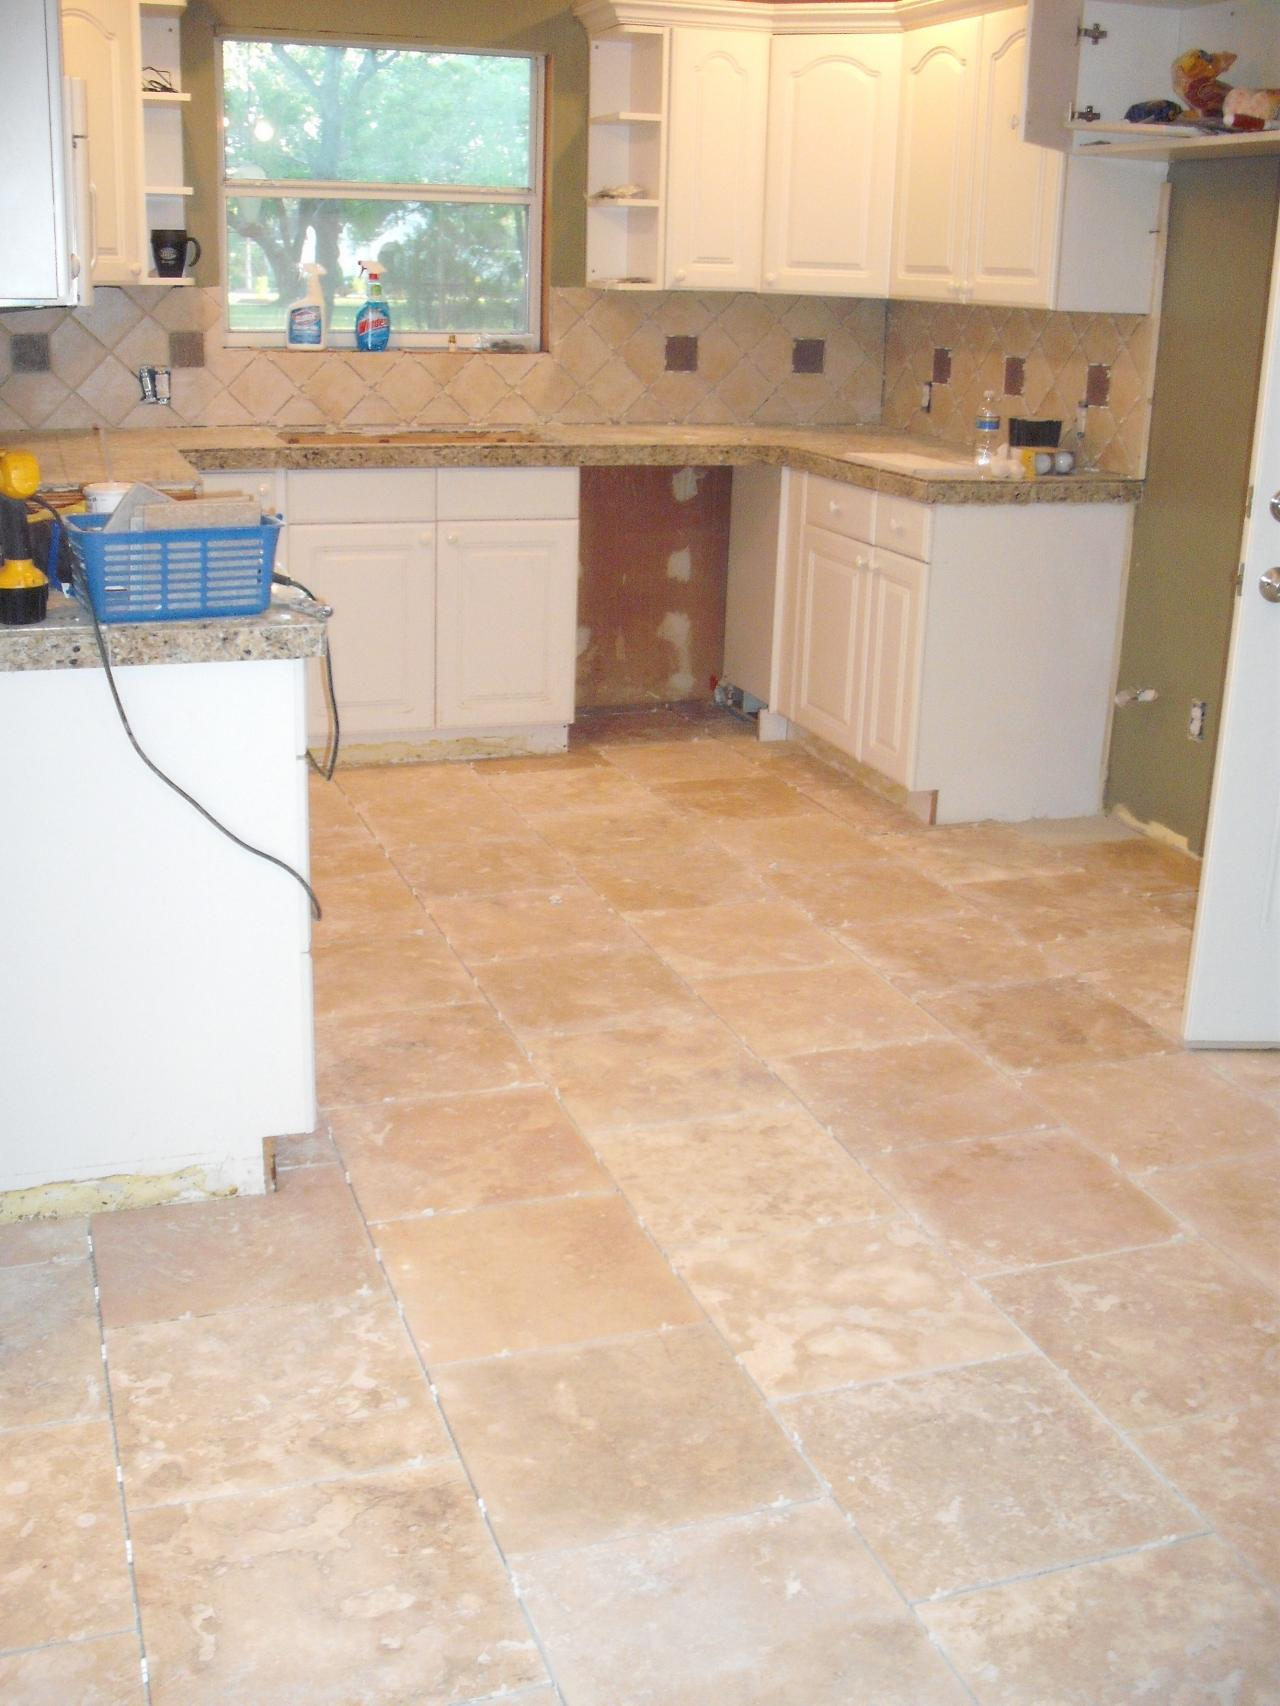 Travertine tile flooring by factor surfacestile stone hardwood call factor surfaces today to learn more travertine tile flooring dailygadgetfo Gallery